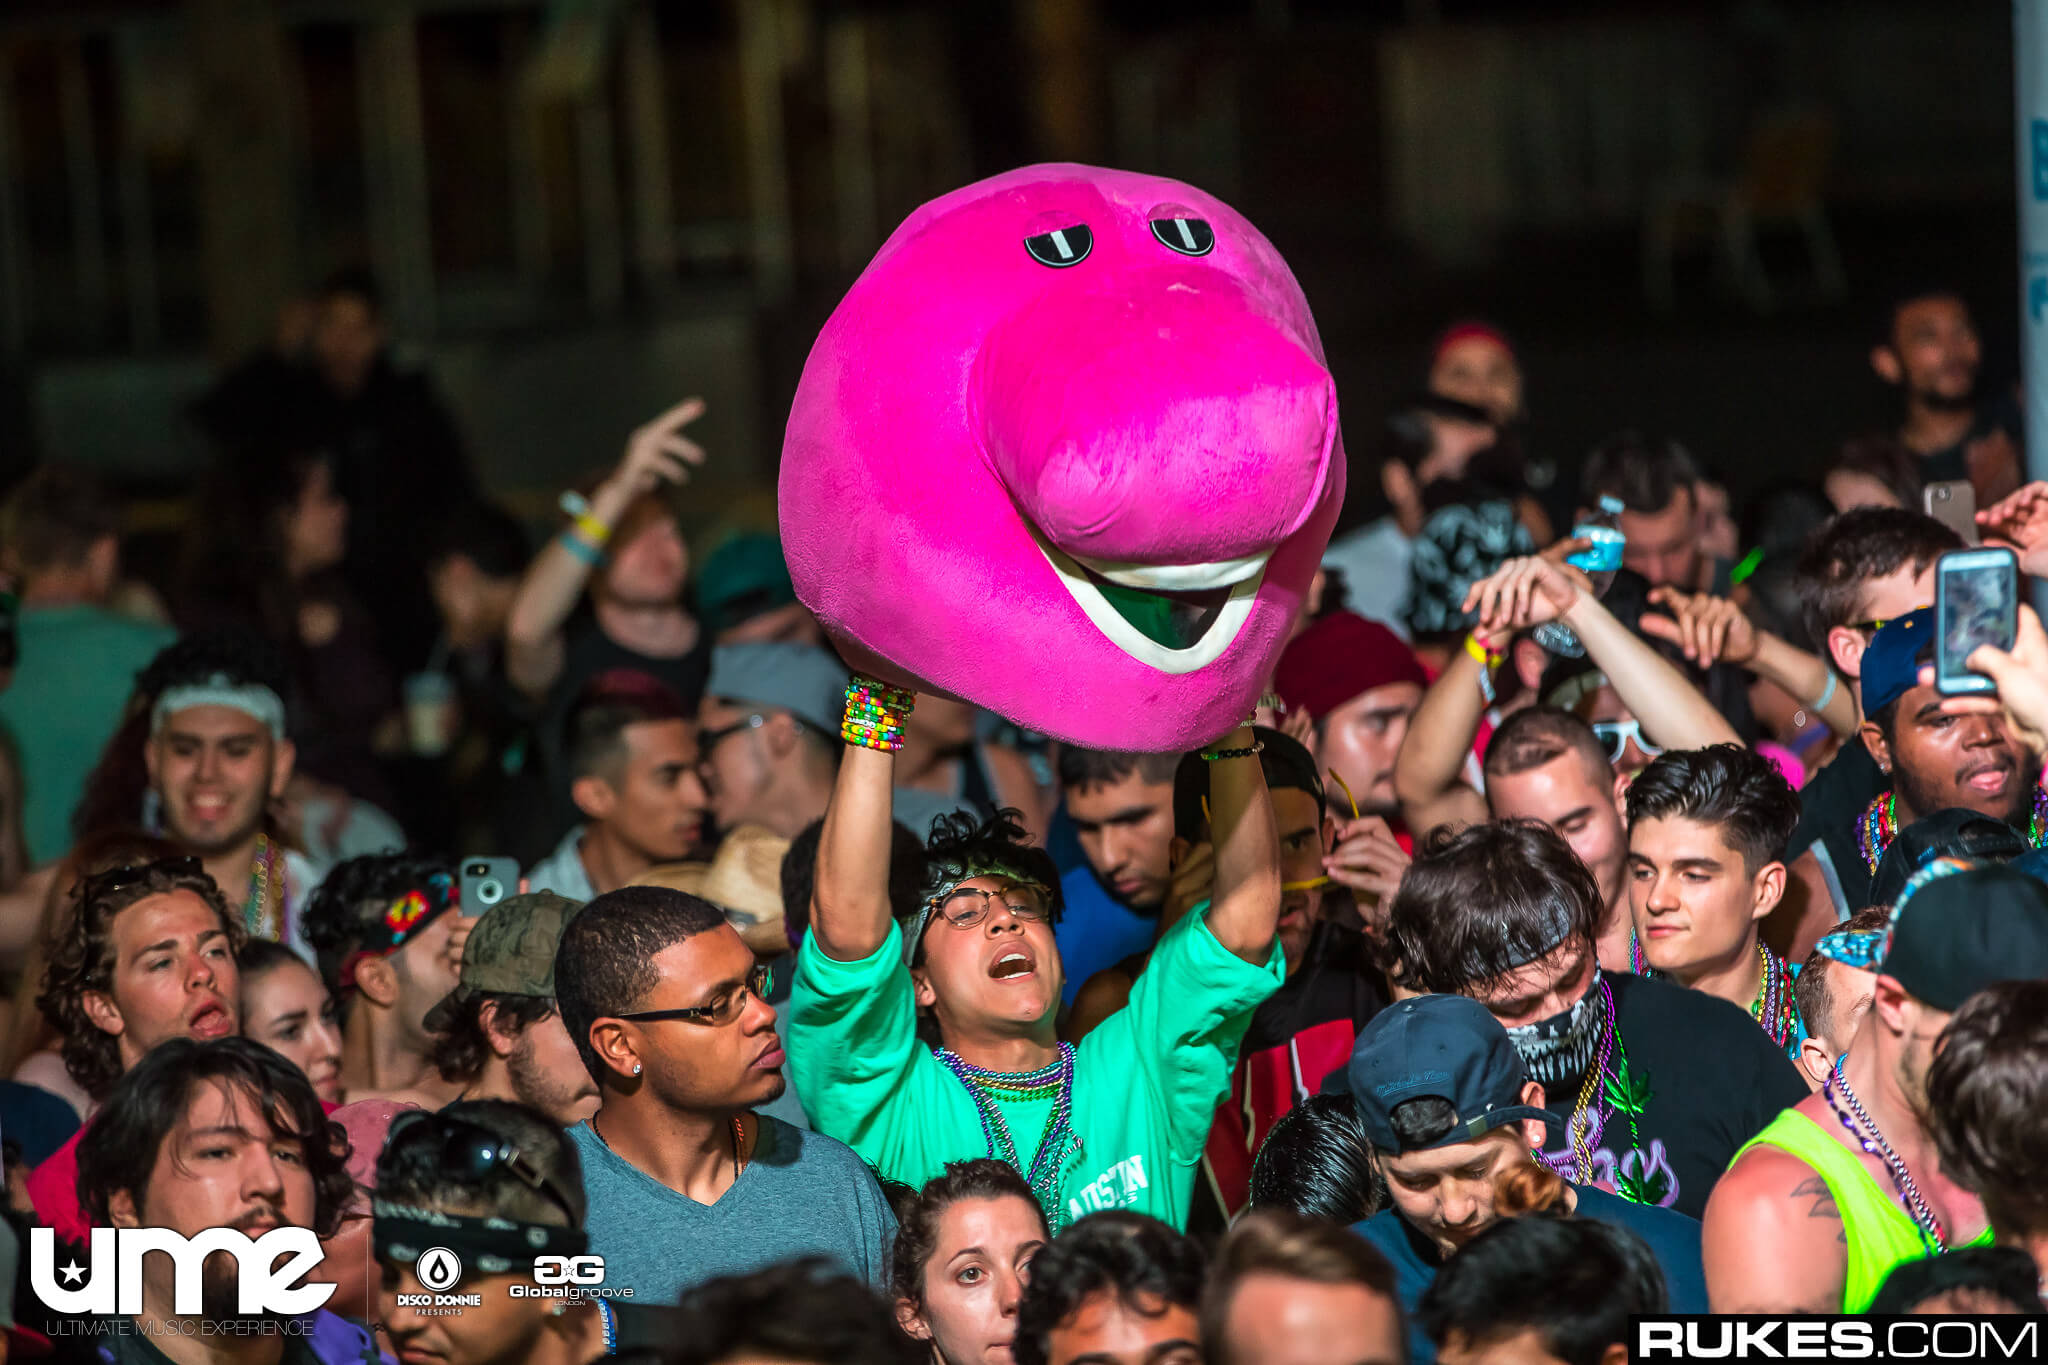 fan with barney mask at ume 2017